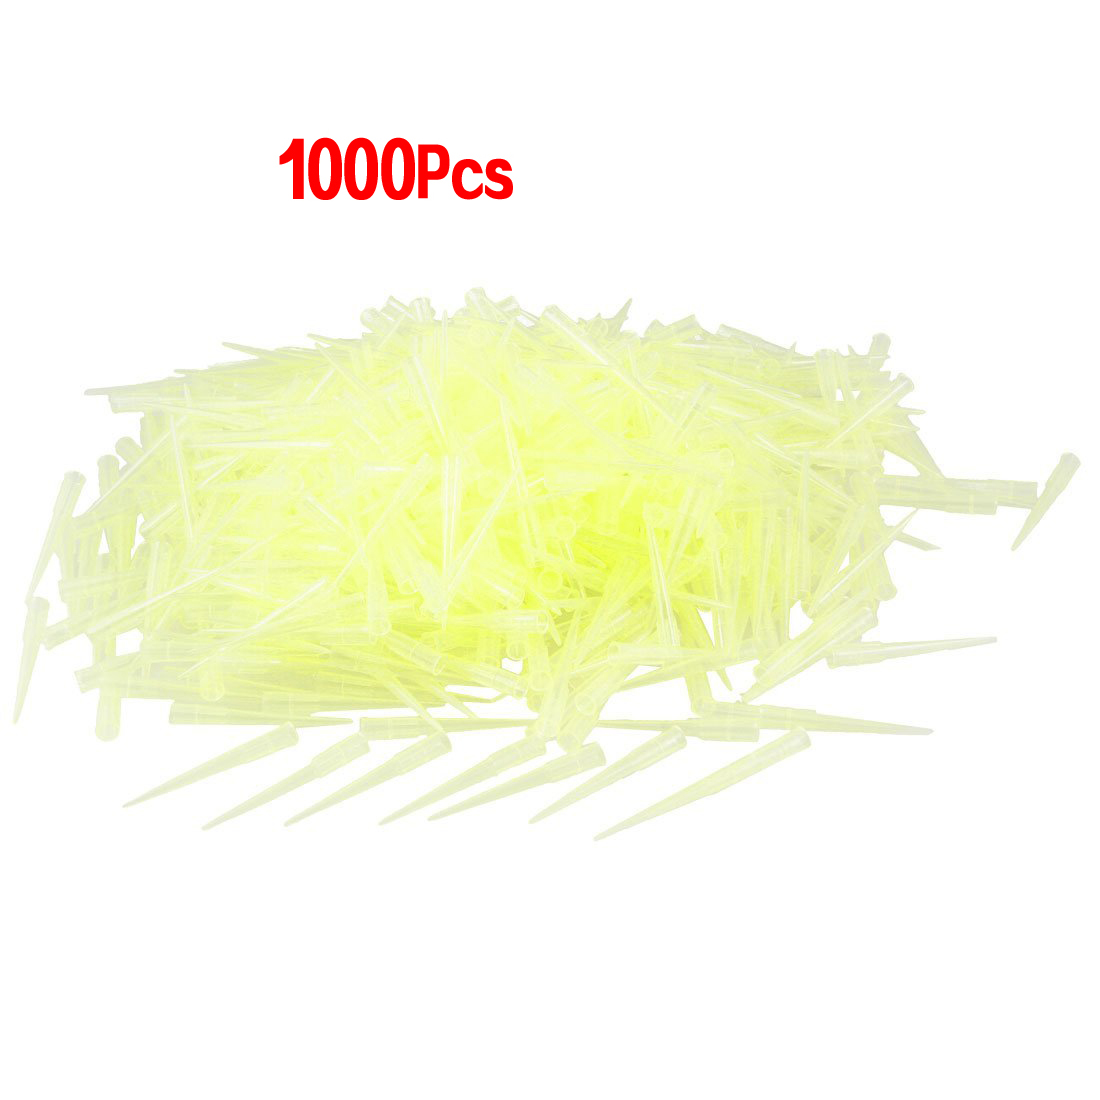 Laboratory Clear Yellow 200UL Lab Liquid Pipette Pipettor Tips 1000 PcsLaboratory Clear Yellow 200UL Lab Liquid Pipette Pipettor Tips 1000 Pcs